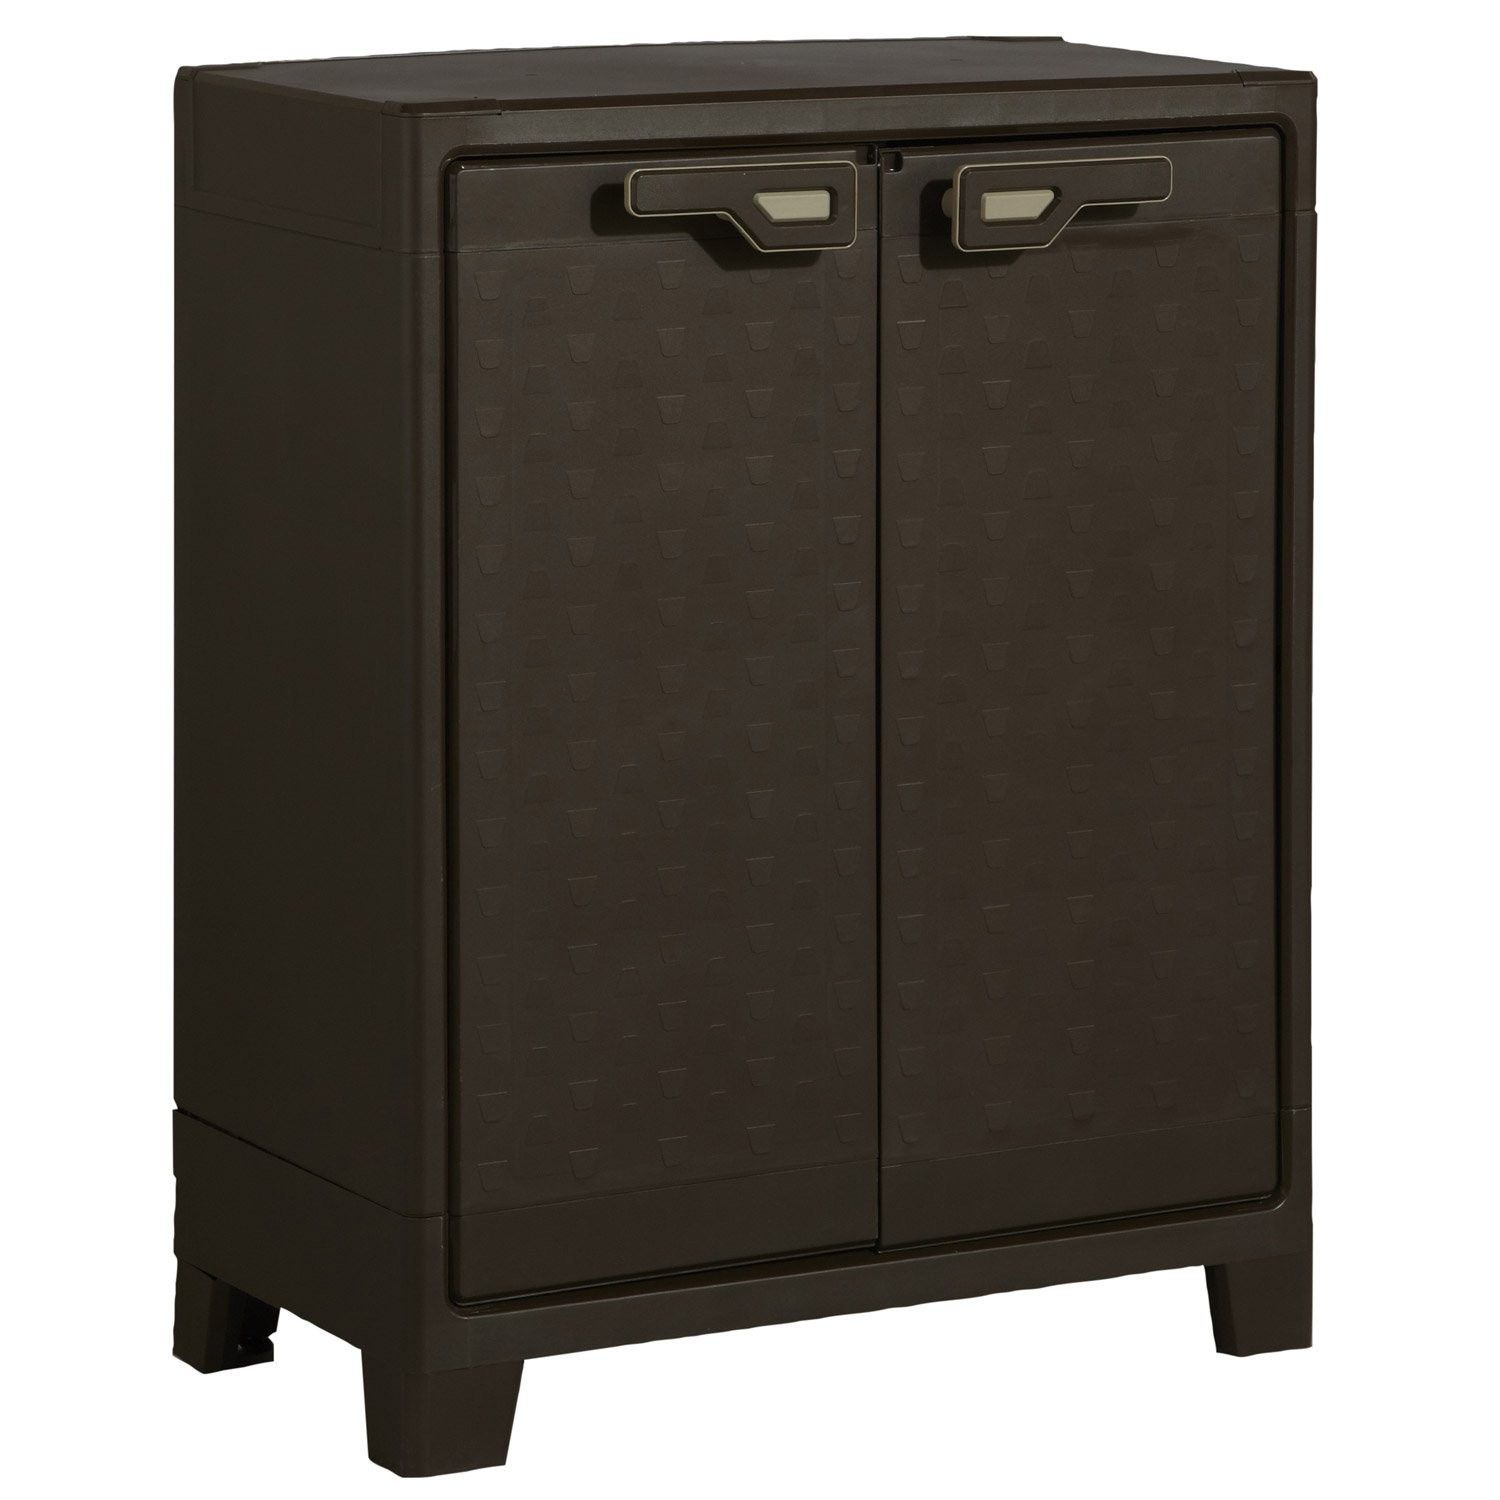 Armoire Plastique Brico Depot Armoire Plastique Brico Depot Armoire Basse Resine H 97 X L 65 X P 45 Cm Brico Depot Info Locker Storage Furniture Kitchen Rack